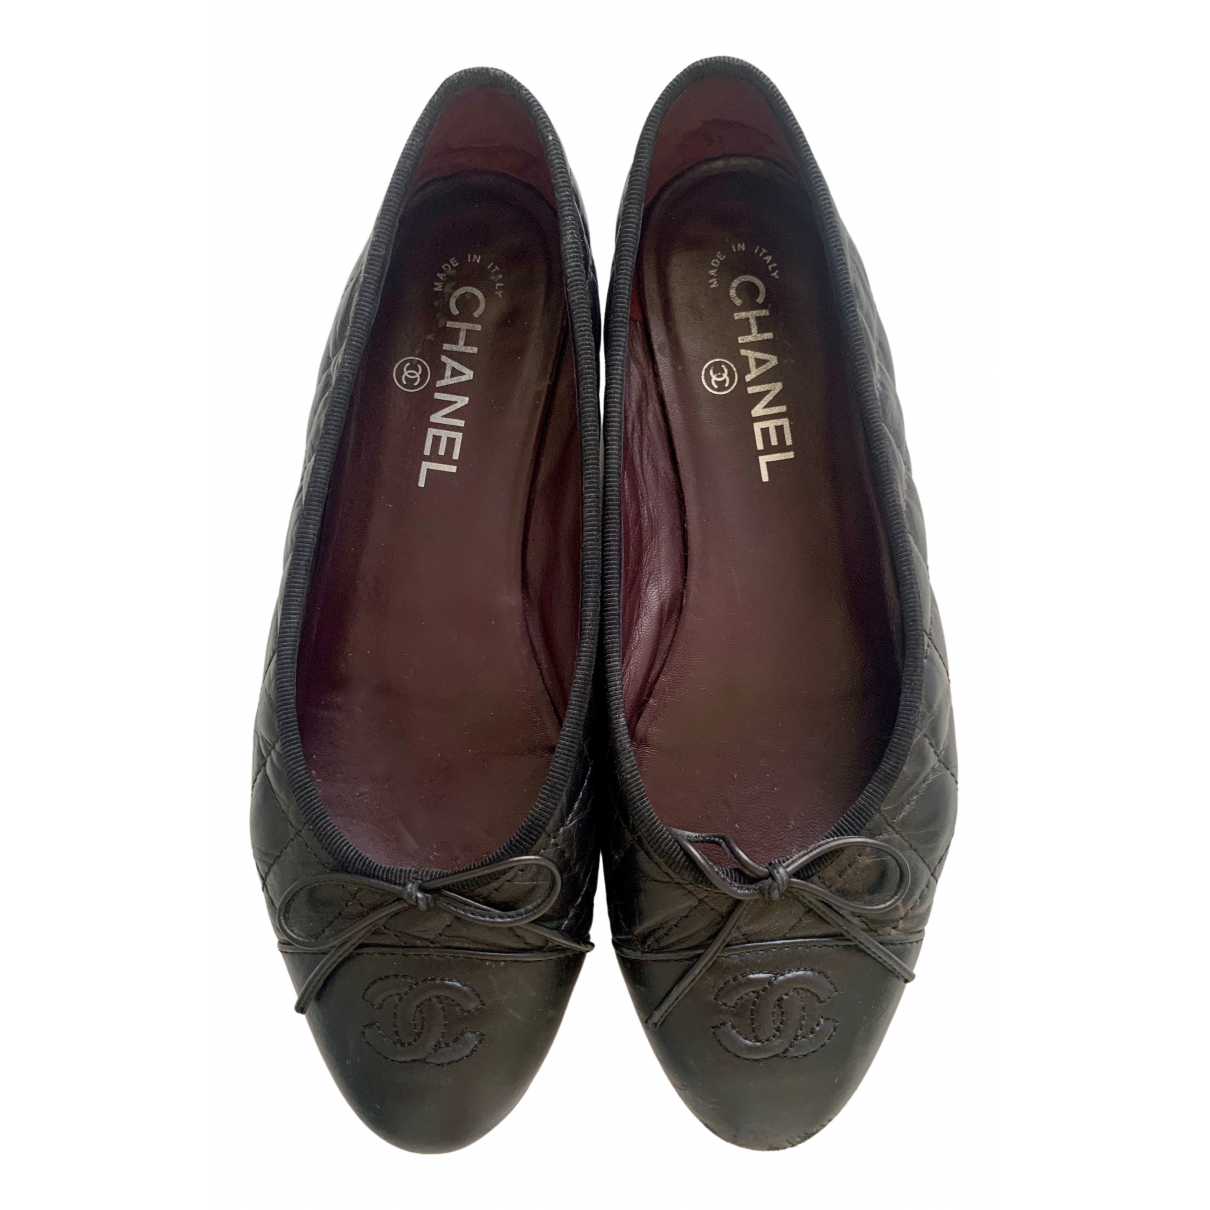 Chanel \N Black Leather Ballet flats for Women 38 EU